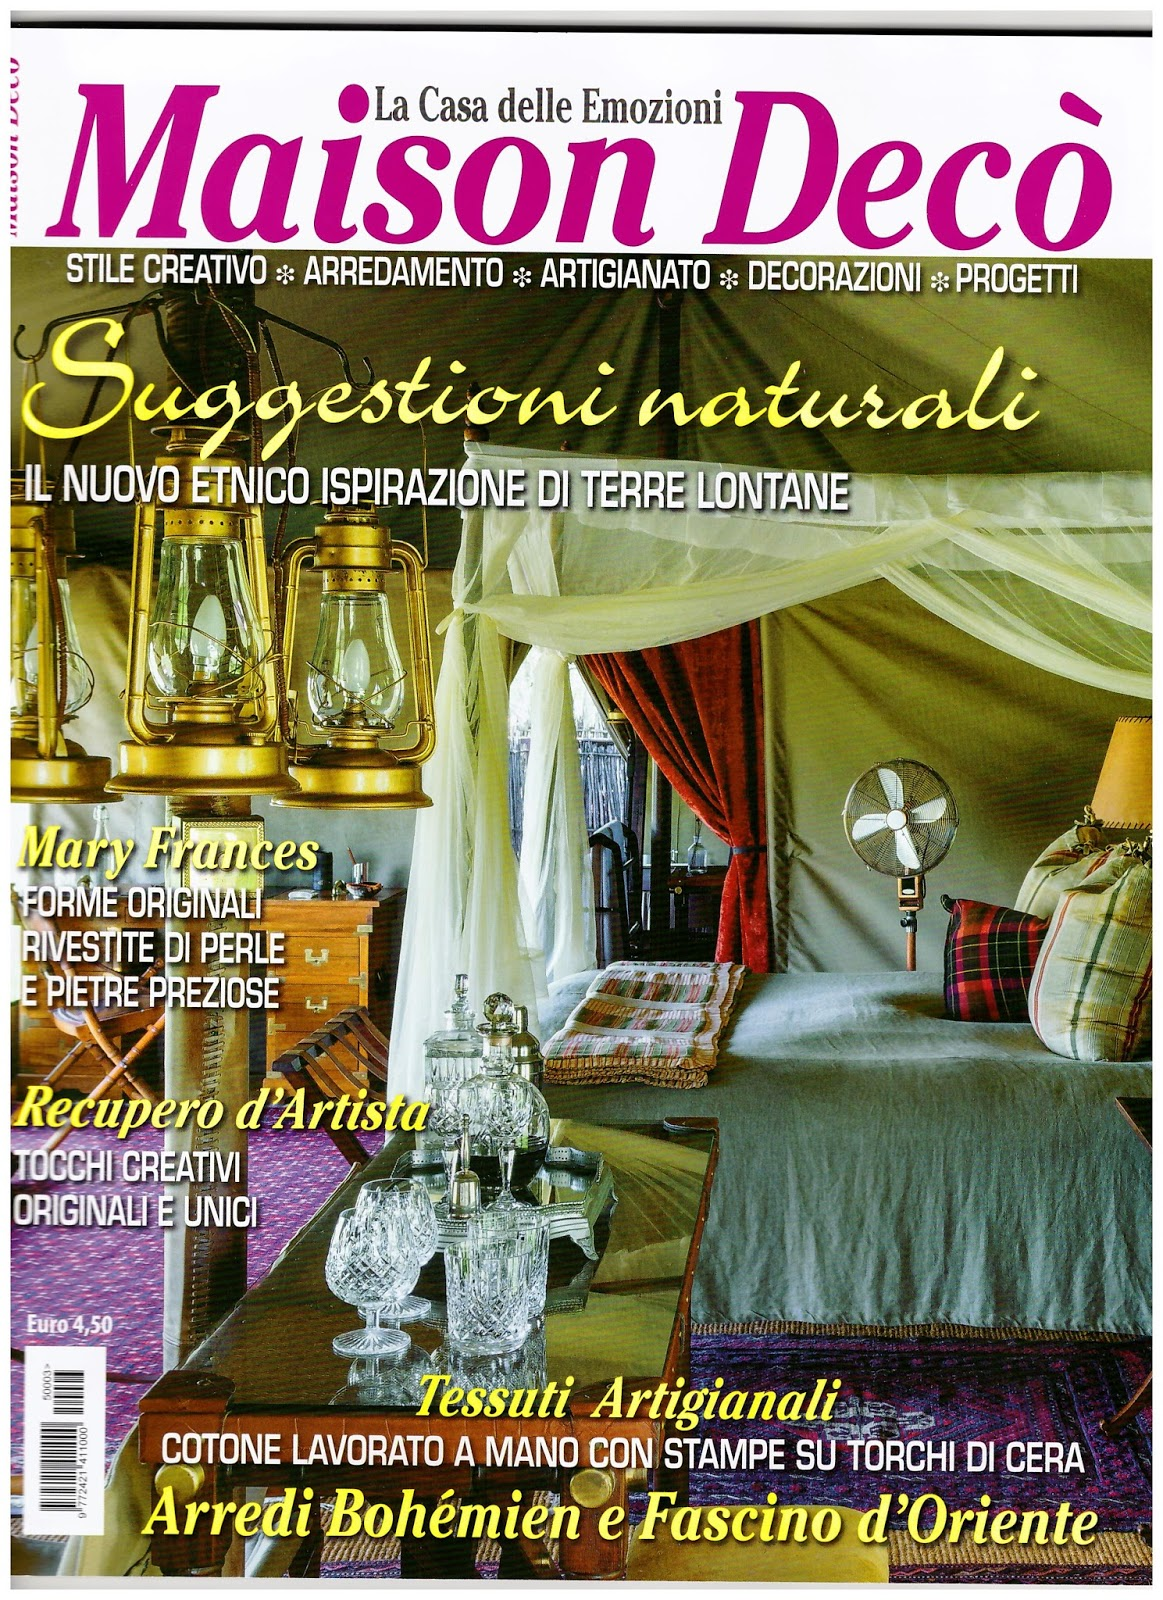 biljana shabby maison deco magazine la casa delle emozioni. Black Bedroom Furniture Sets. Home Design Ideas